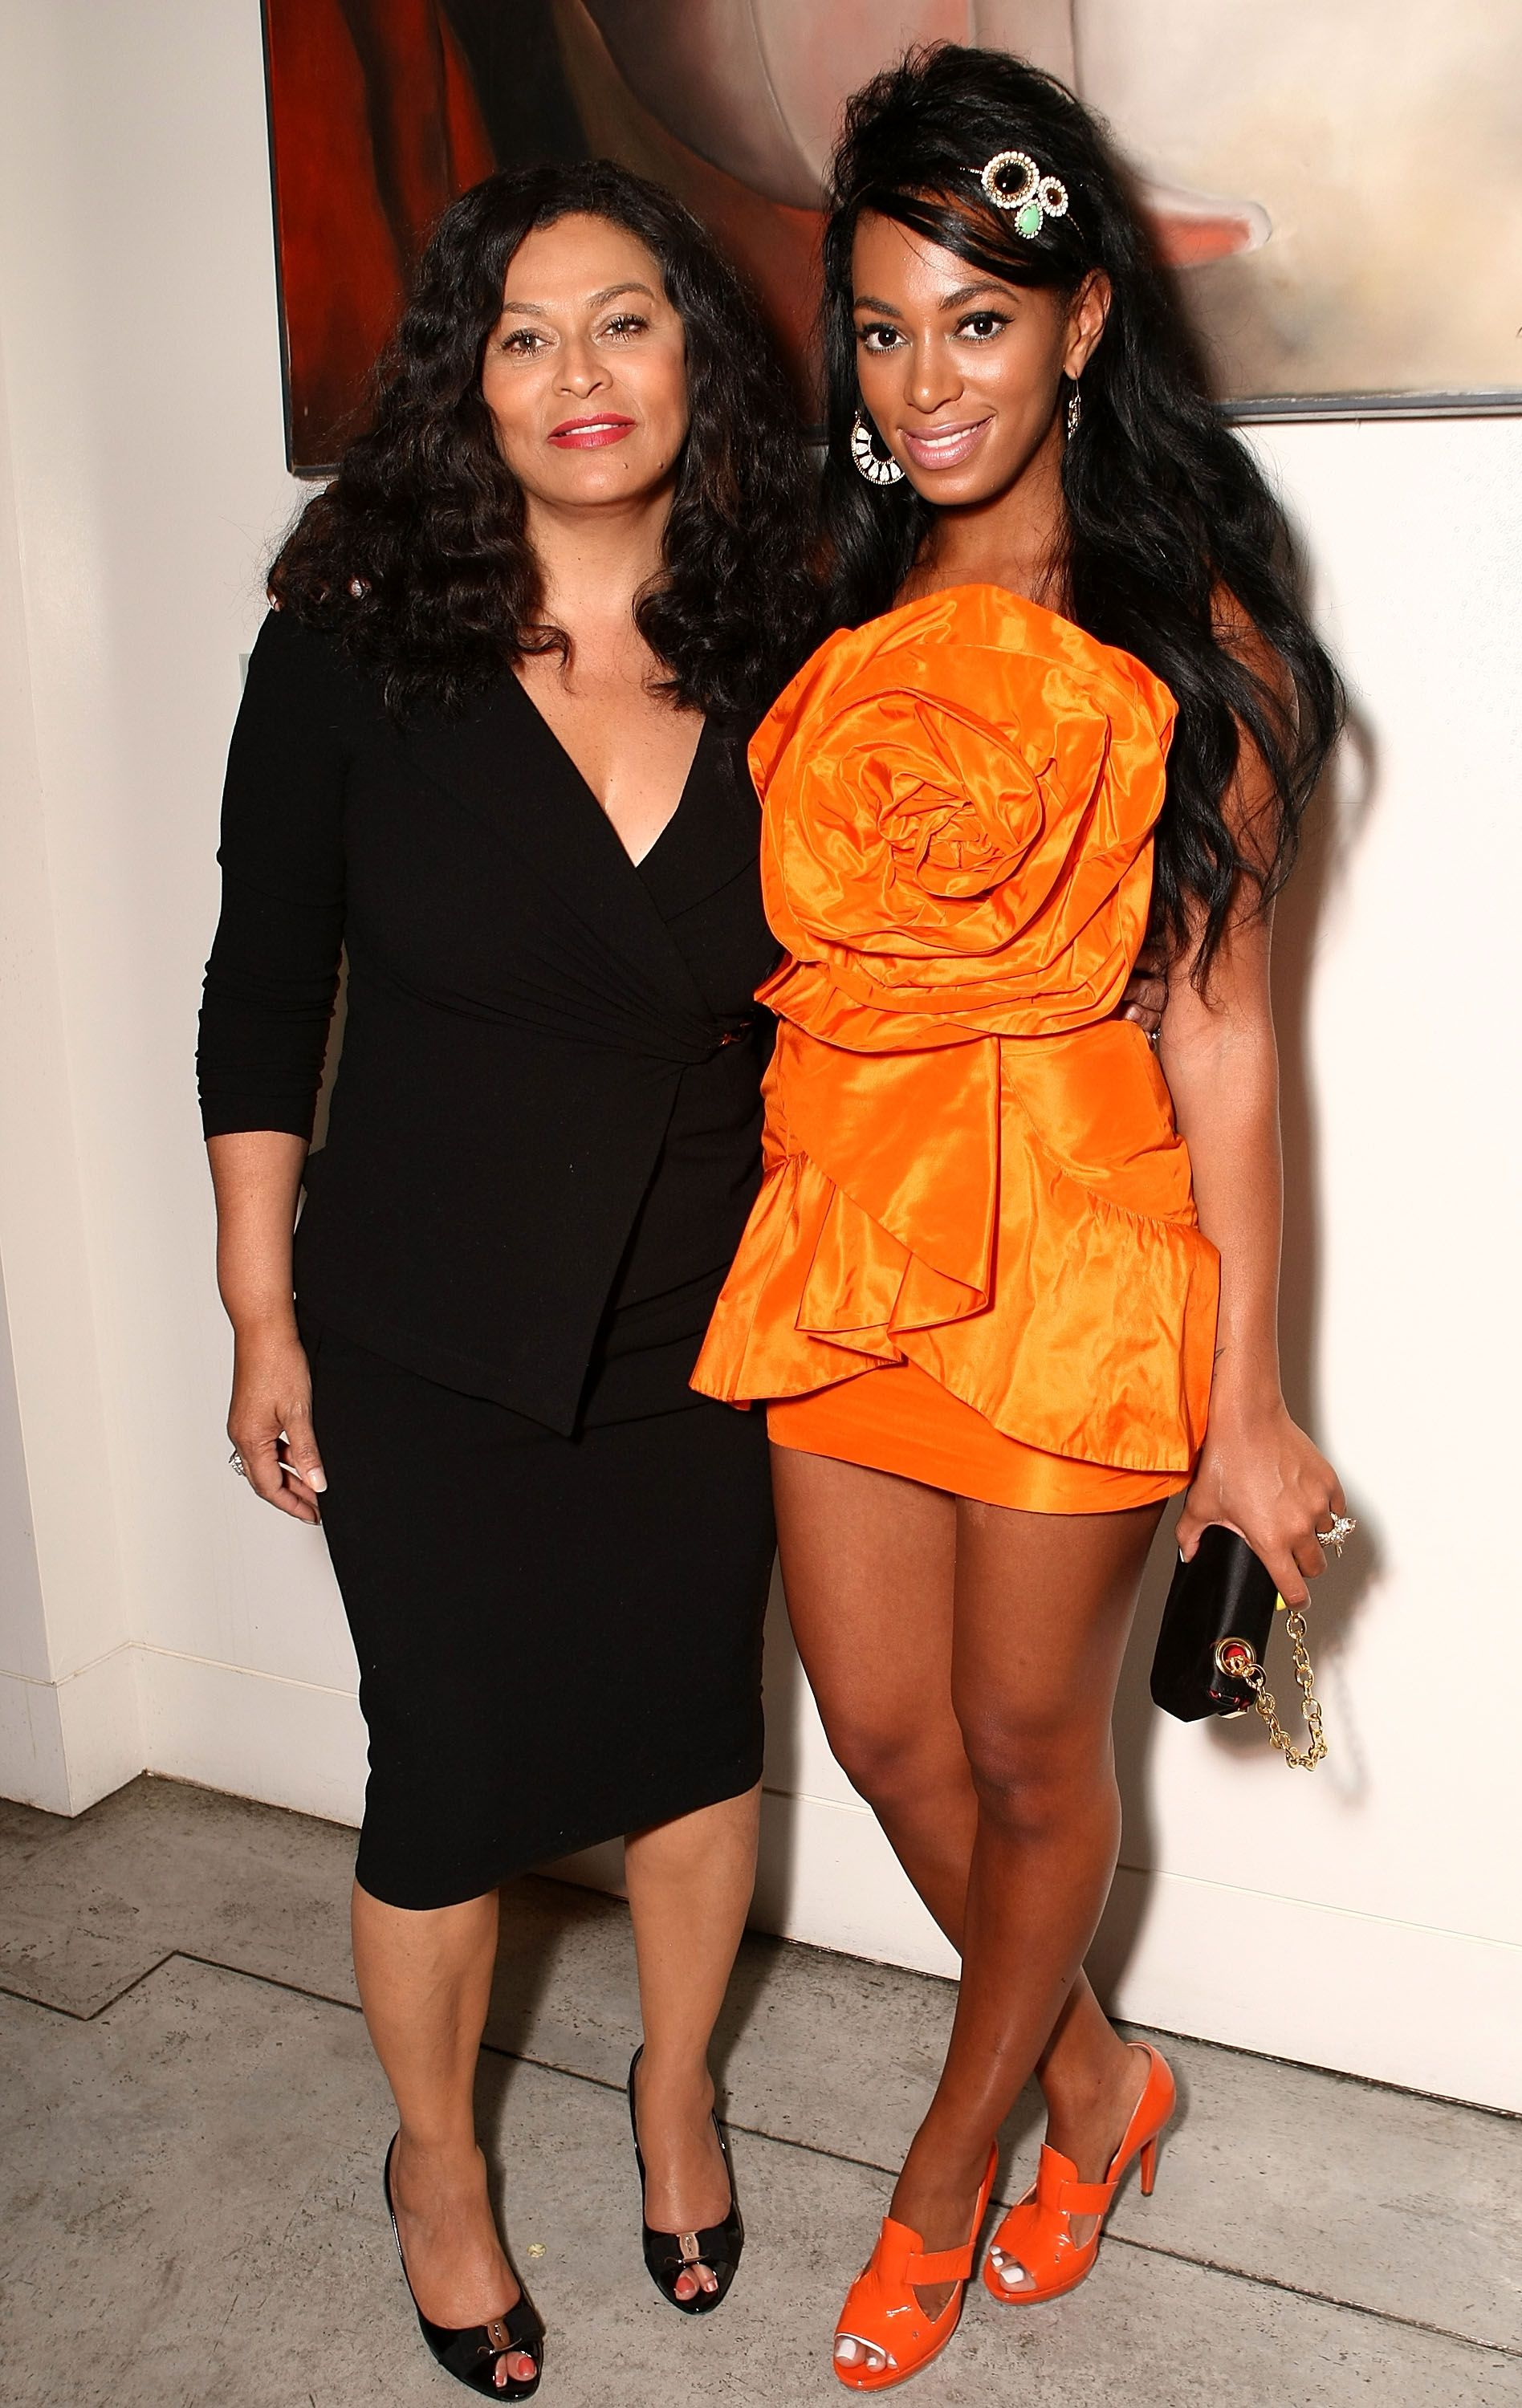 Tina and Solange Knowles at Solange's birthday party held at a private residence on June 23, 2008, in Los Angeles, California | Photo: Alberto E. Rodriguez/Getty Images